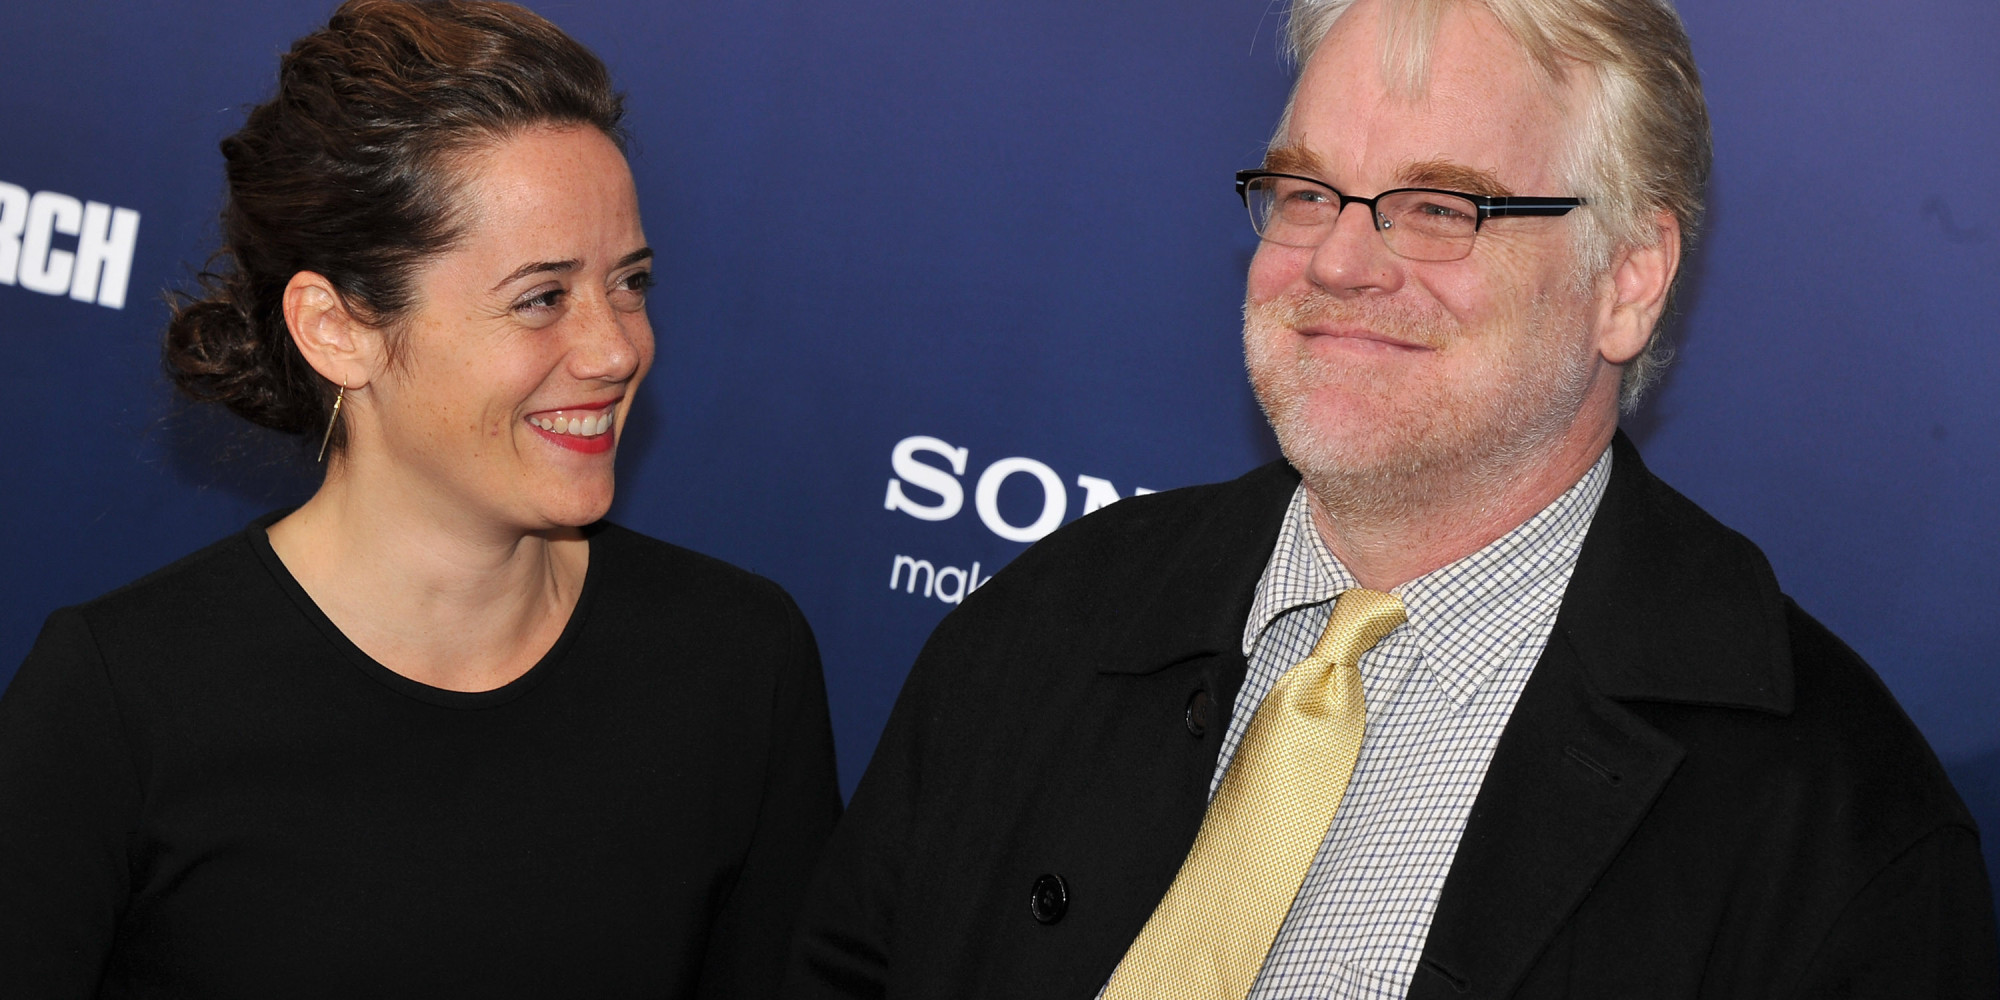 Actor Philip Seymour Hoffman's Partner Talks About The Late Actor's 2014 Death